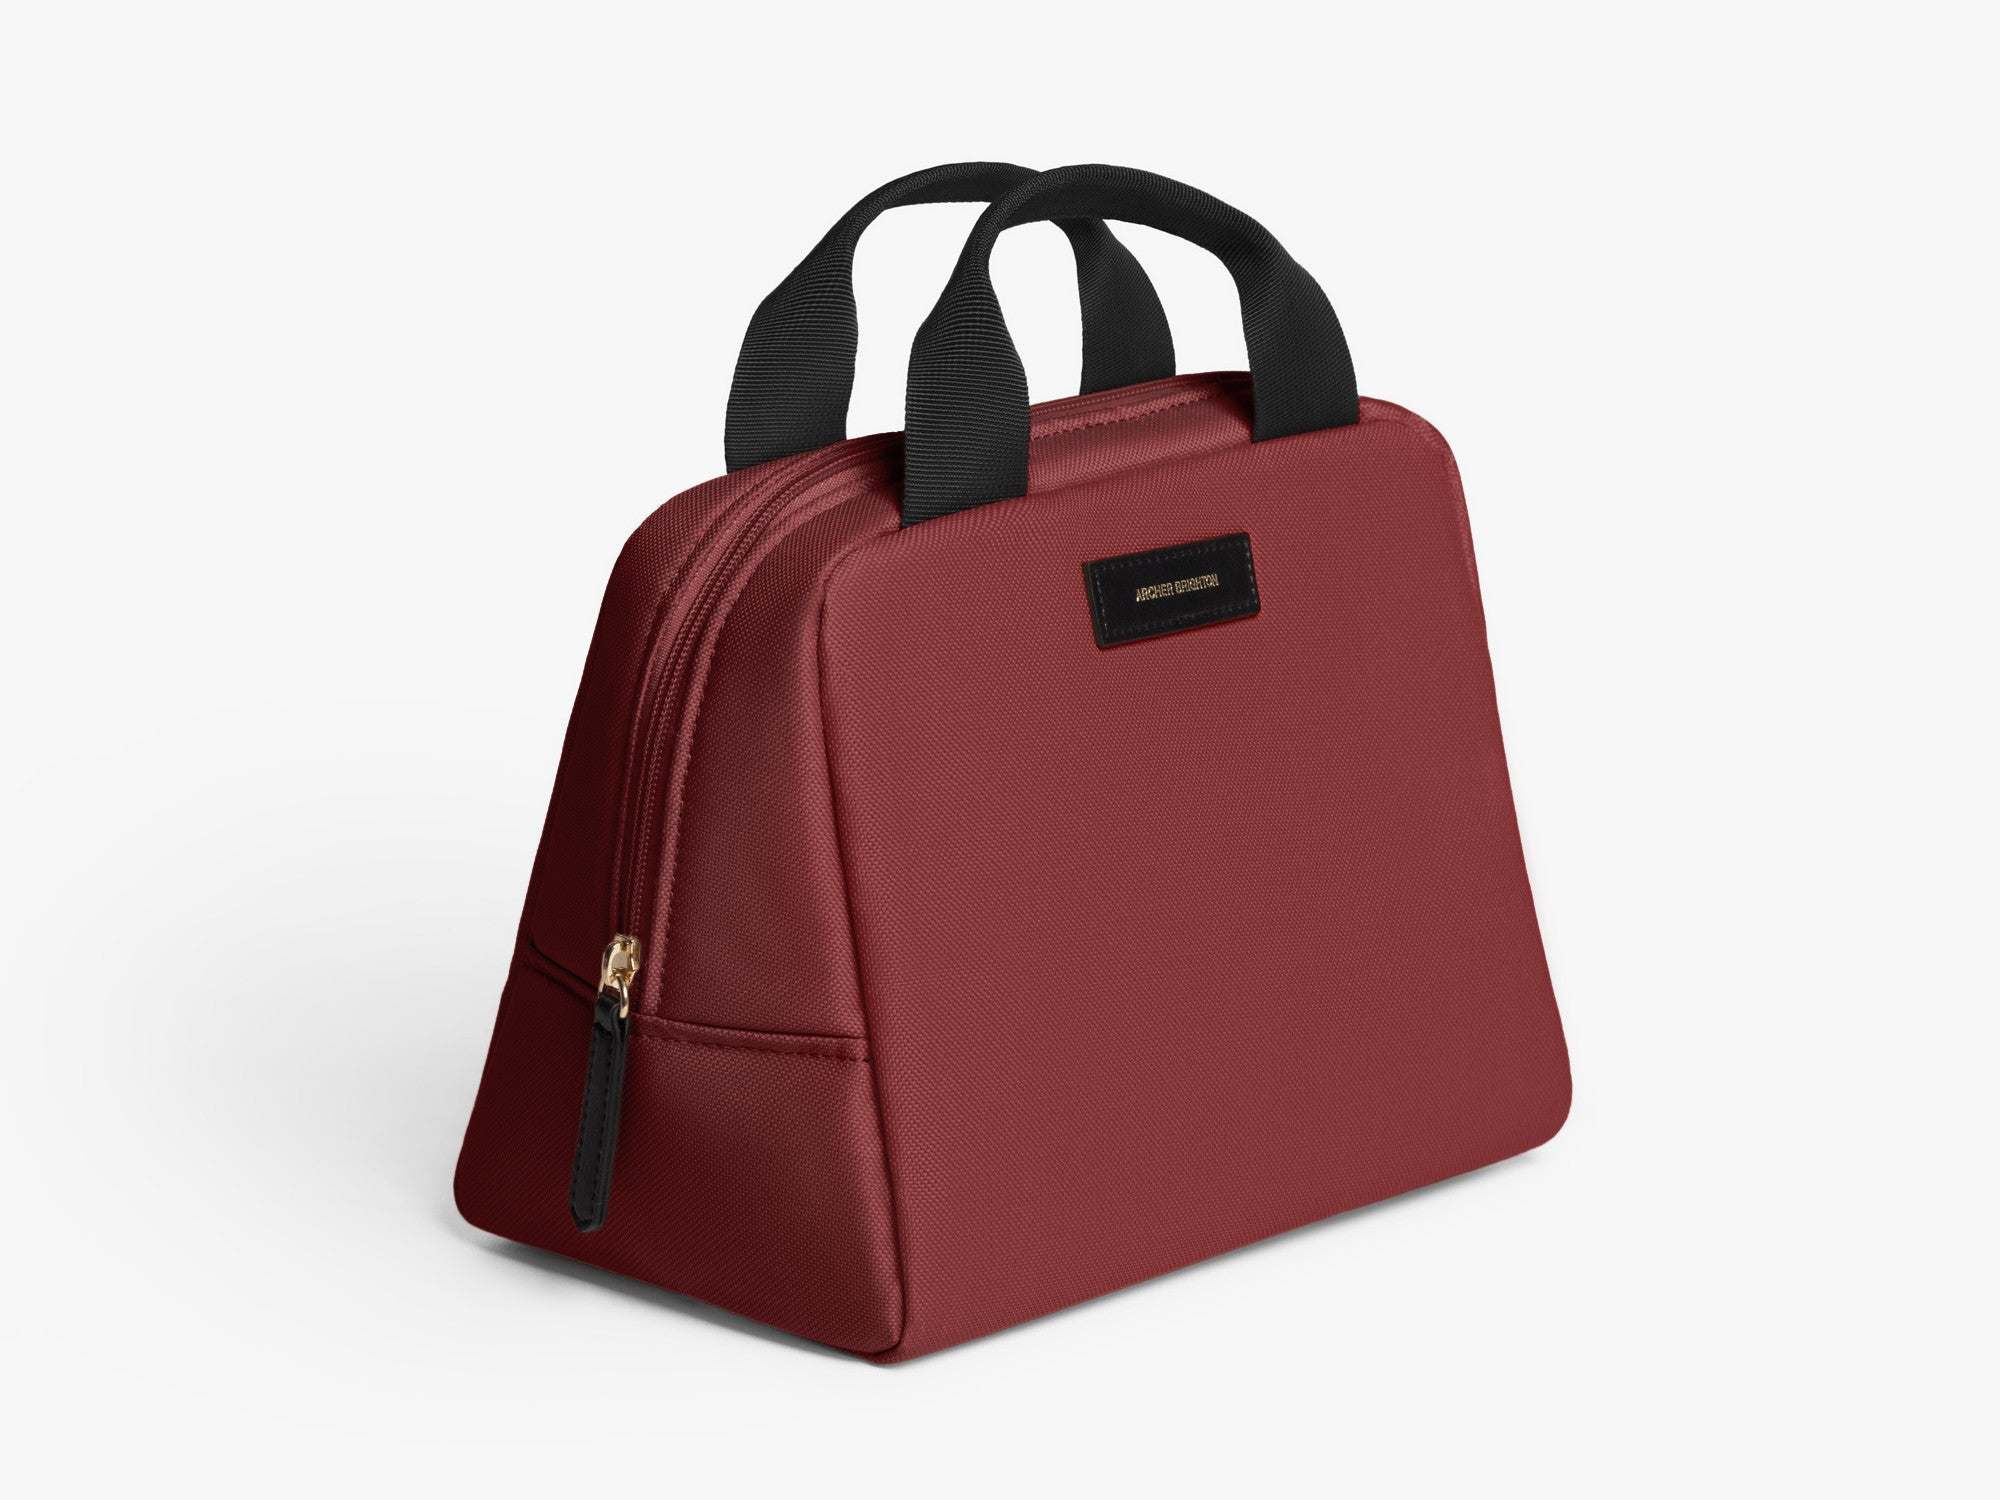 THE PARKER INSULATED BAG